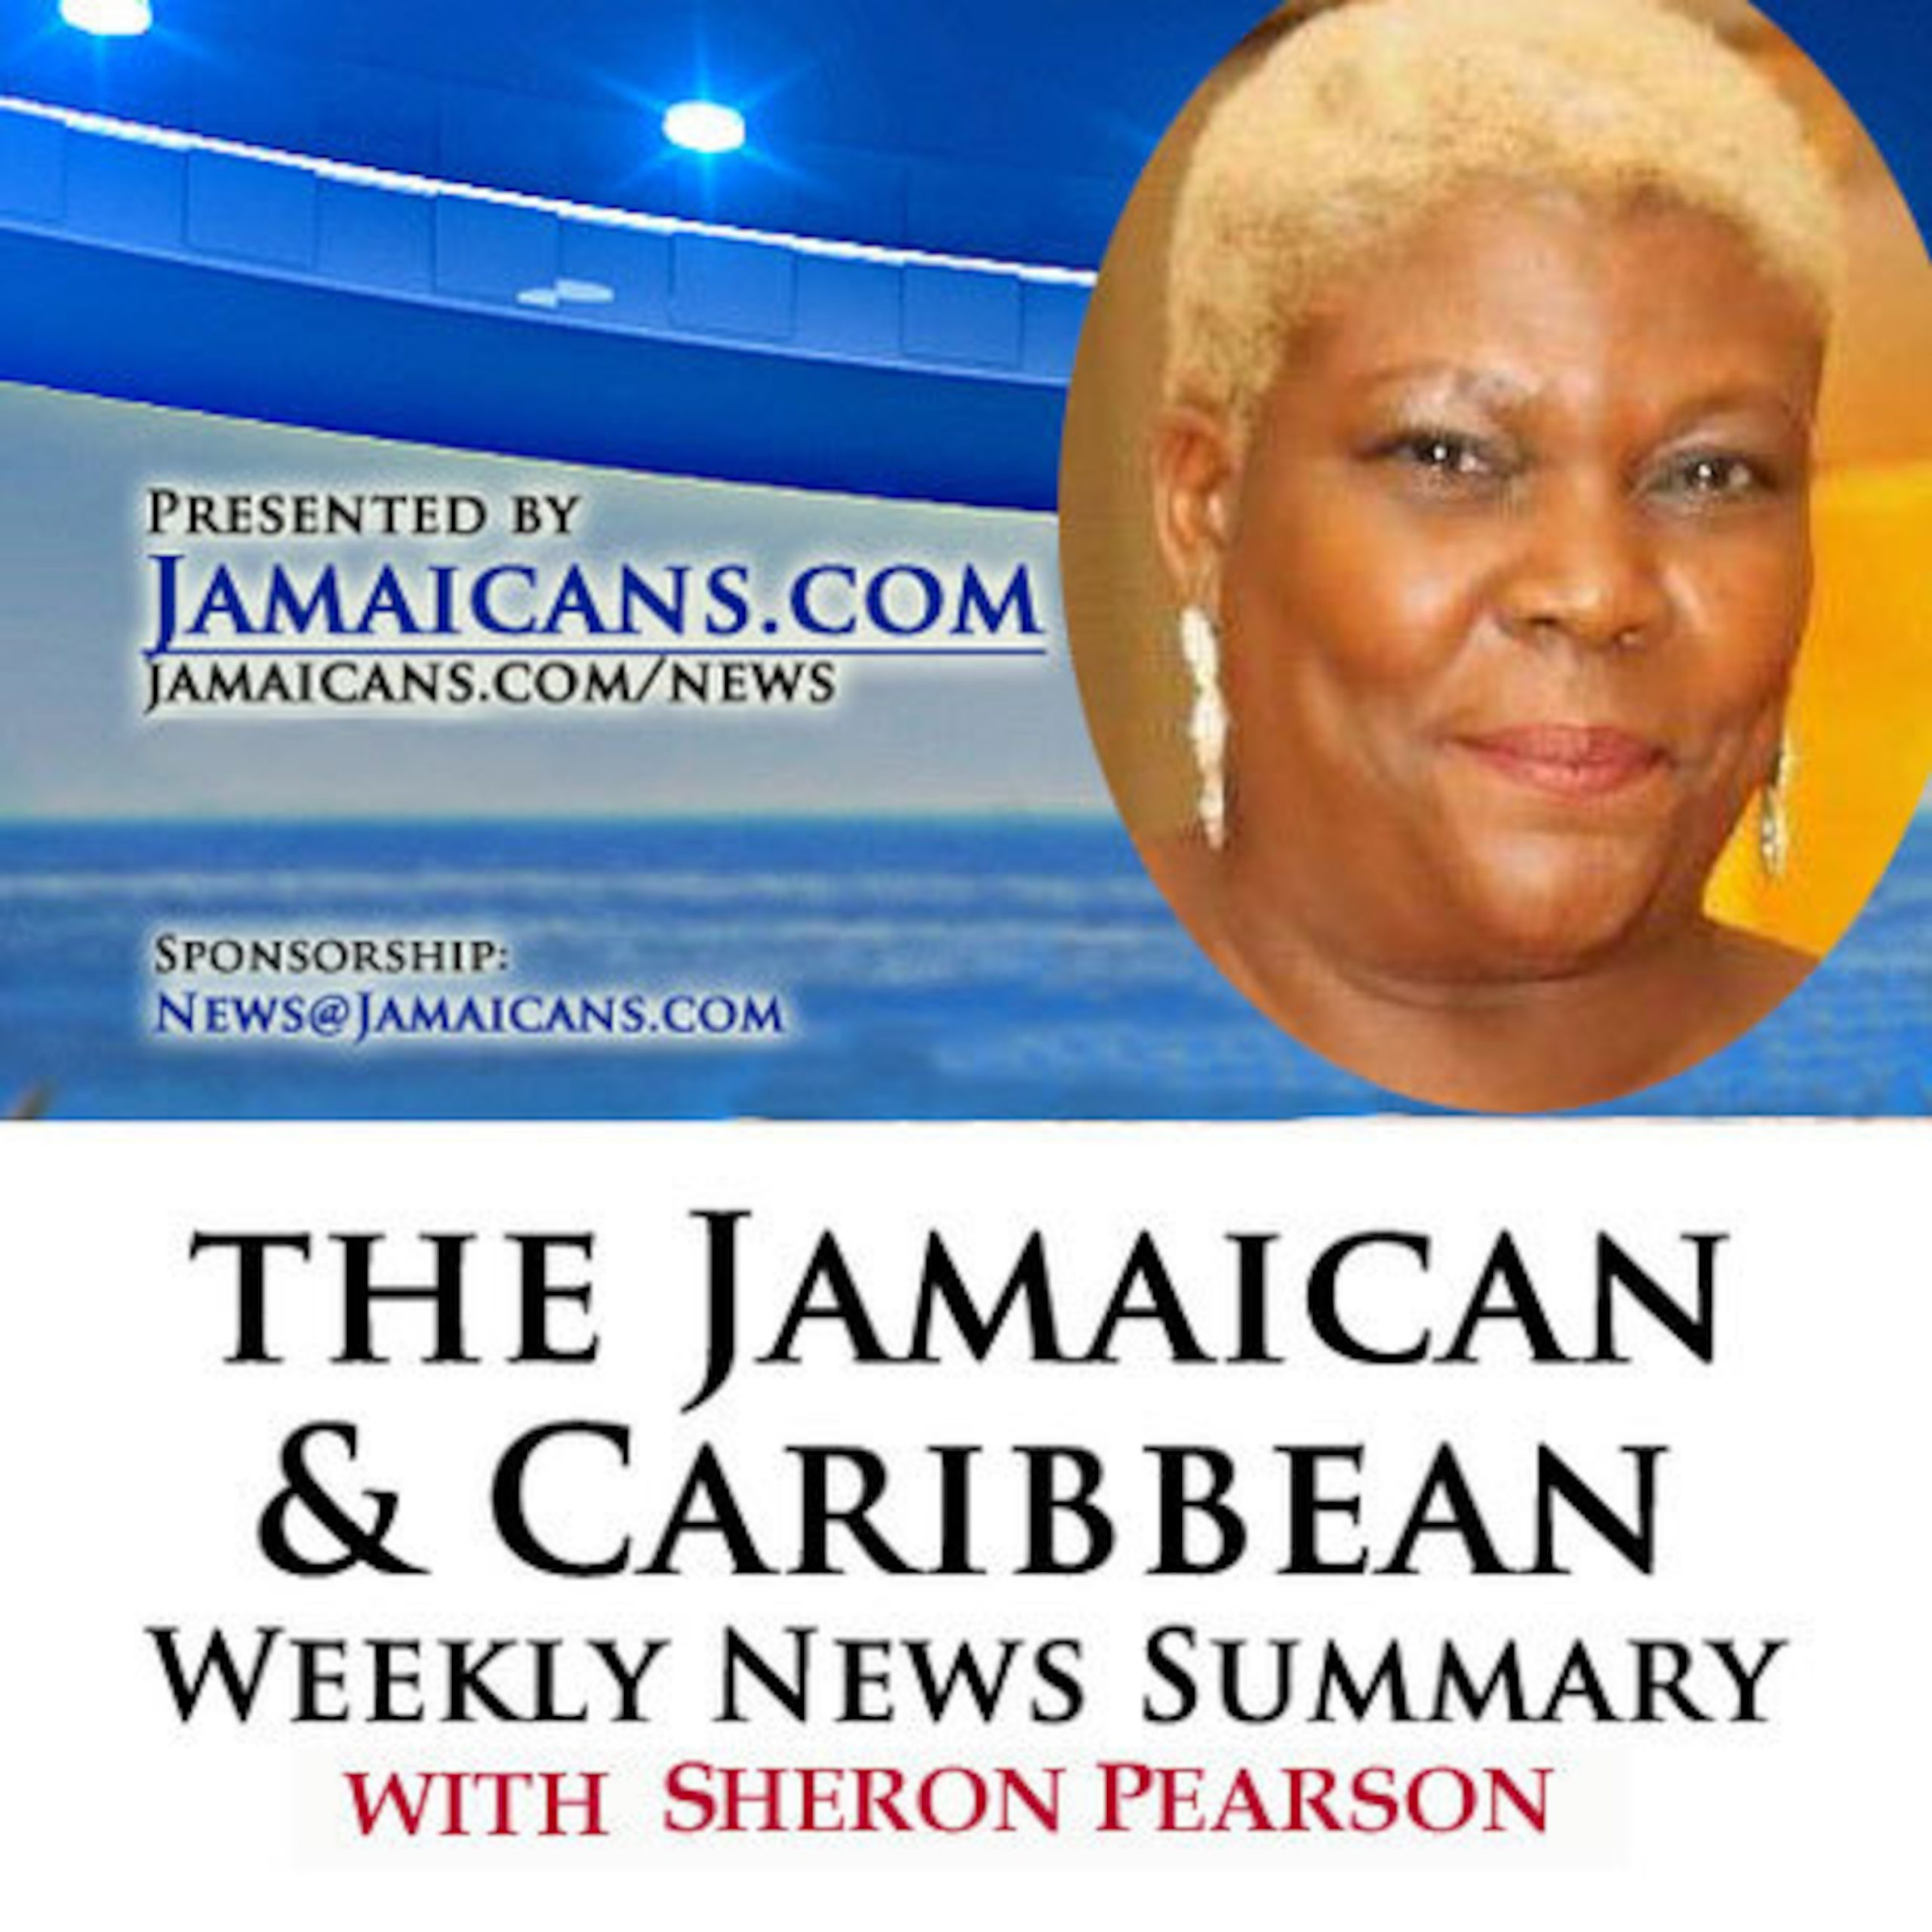 Listen to the Podcast of The Jamaica & Caribbean Weekly News Summary for the week ending January 31 2020